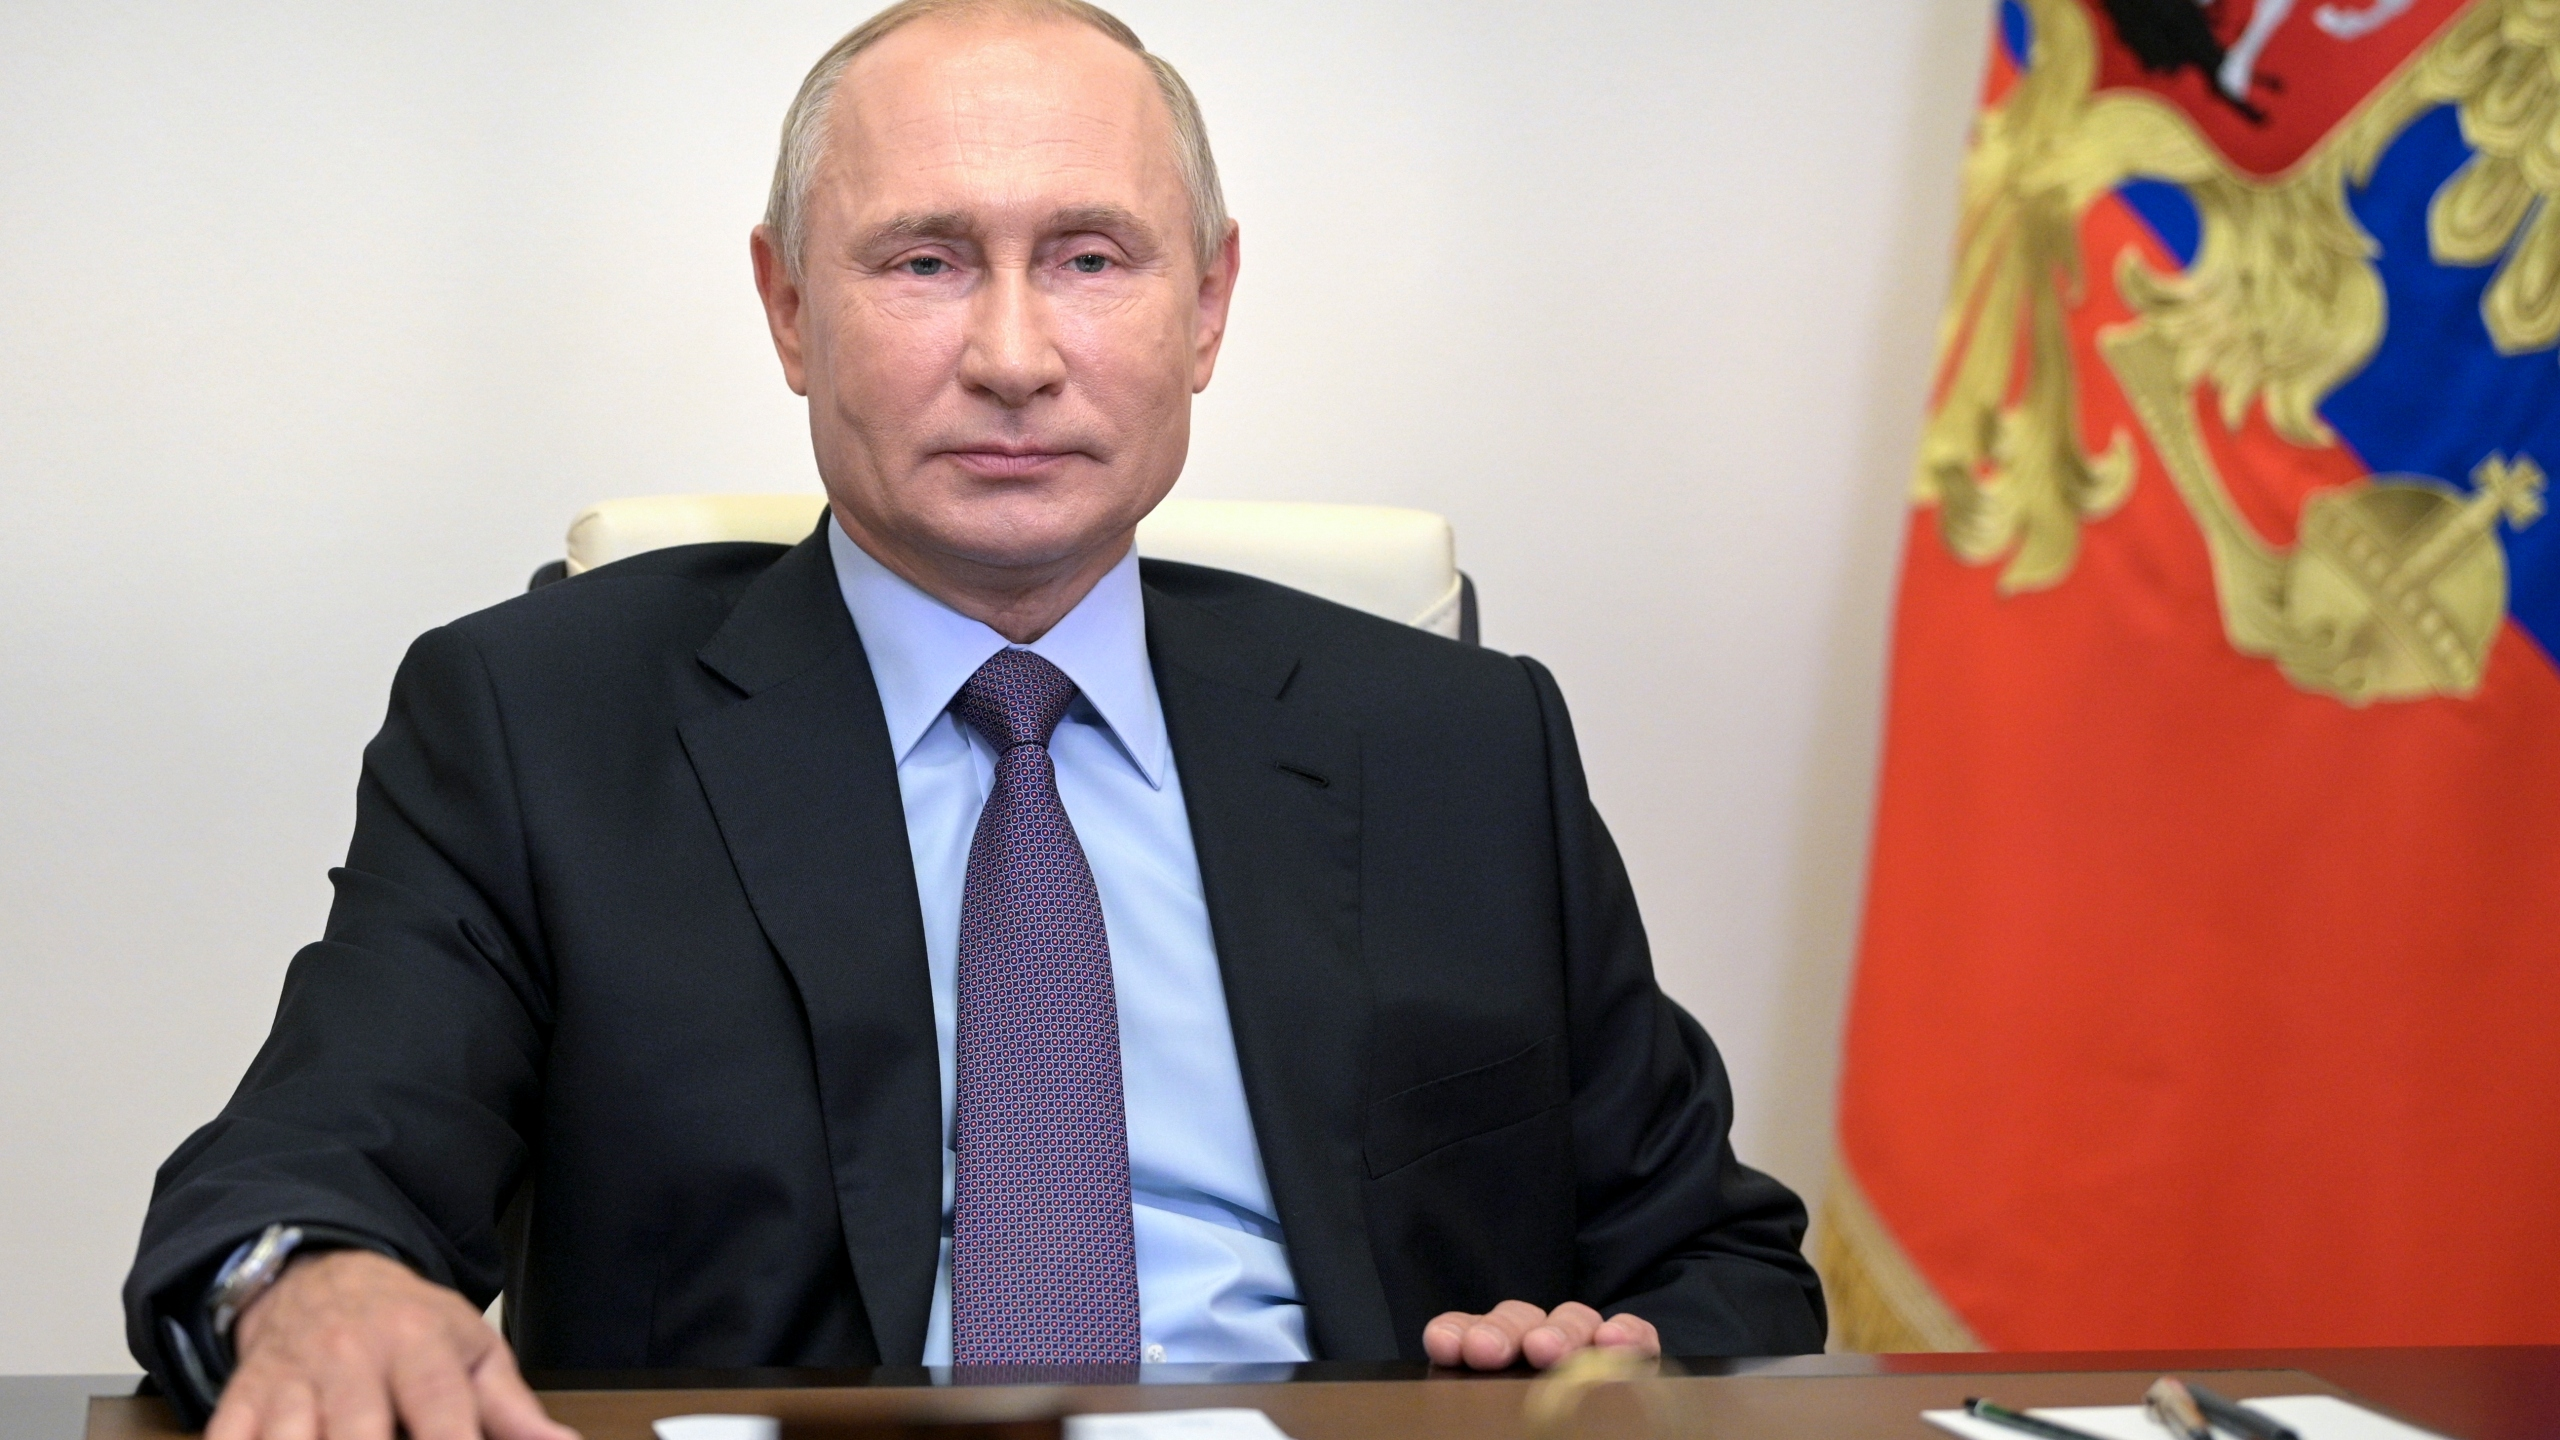 Putin And Trump Discuss Arms Control Issues In Phone Call Krqe News 13